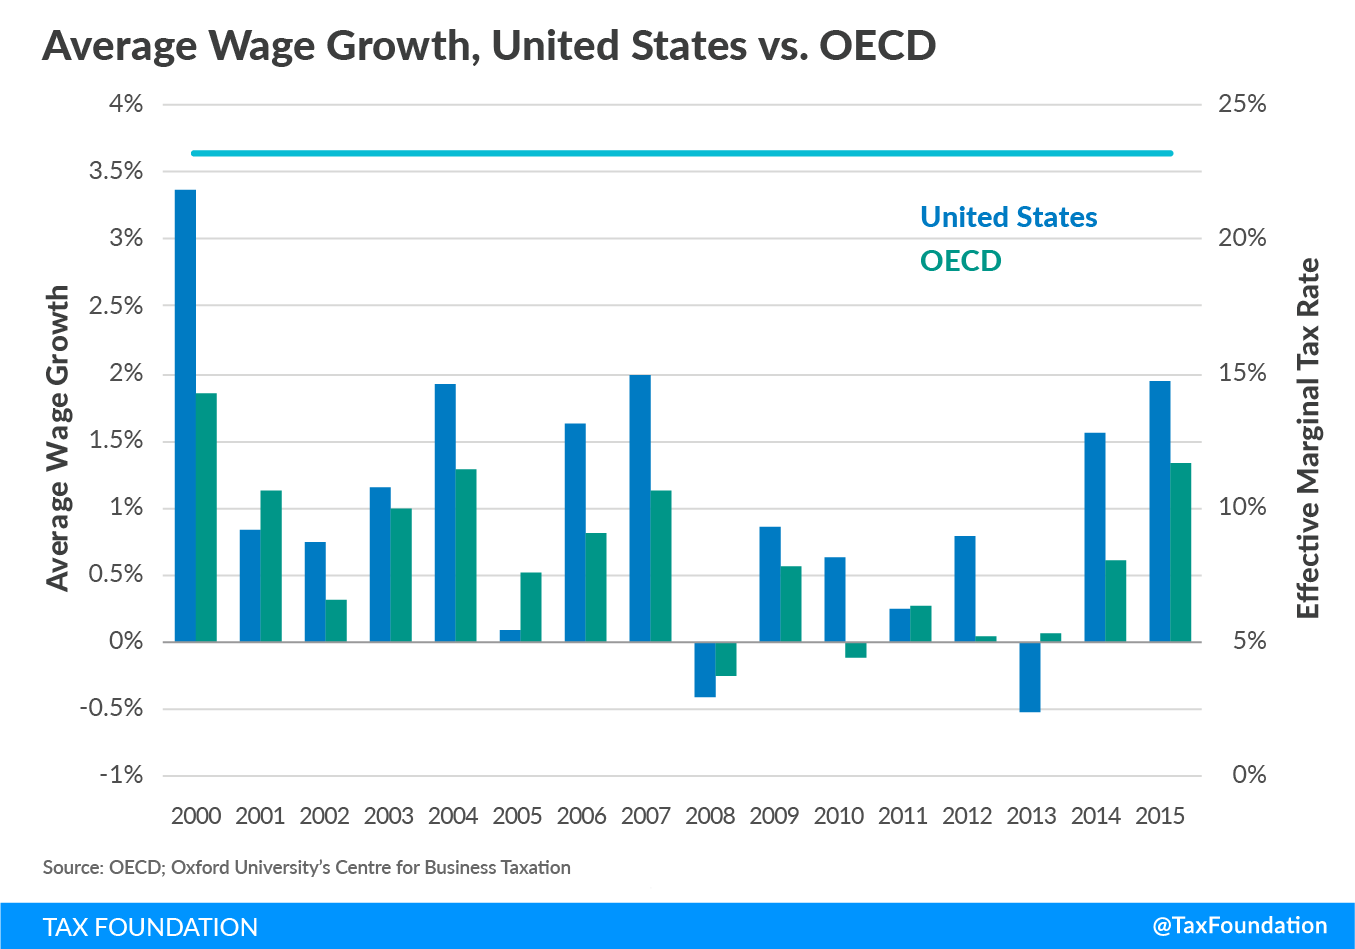 Effective Marginal Tax Rates - United States vs. OECD